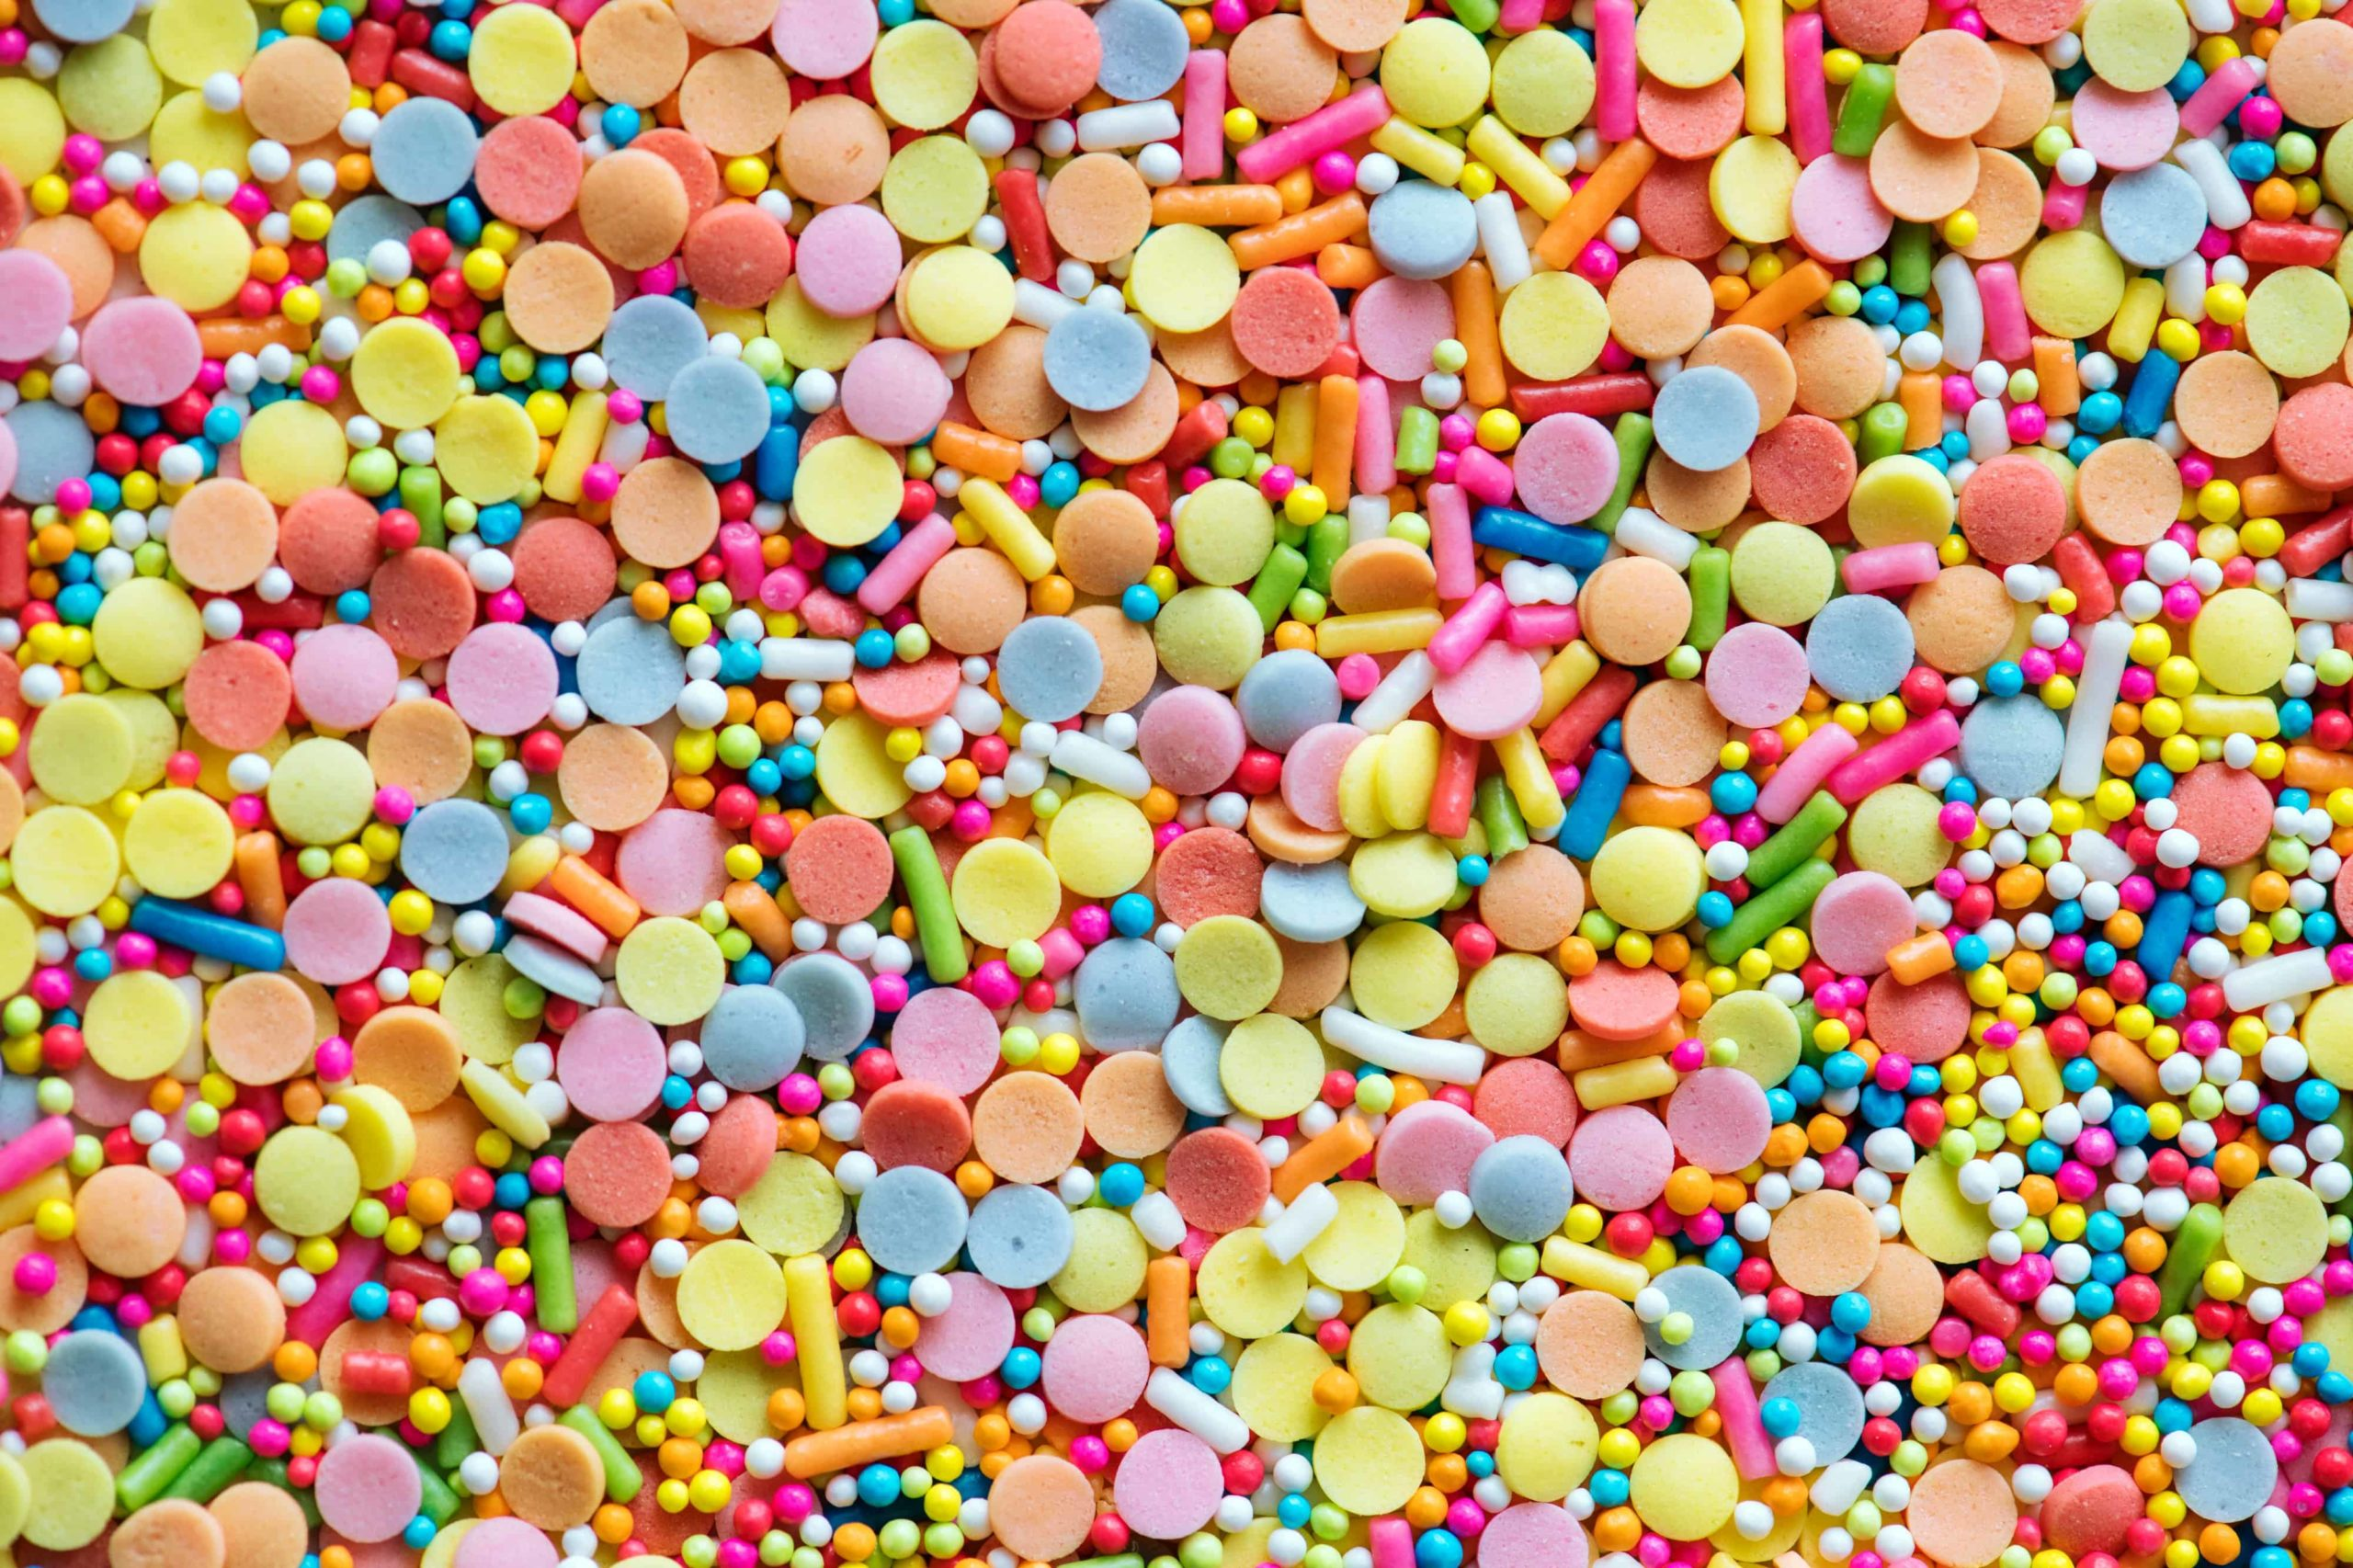 Sugary candies